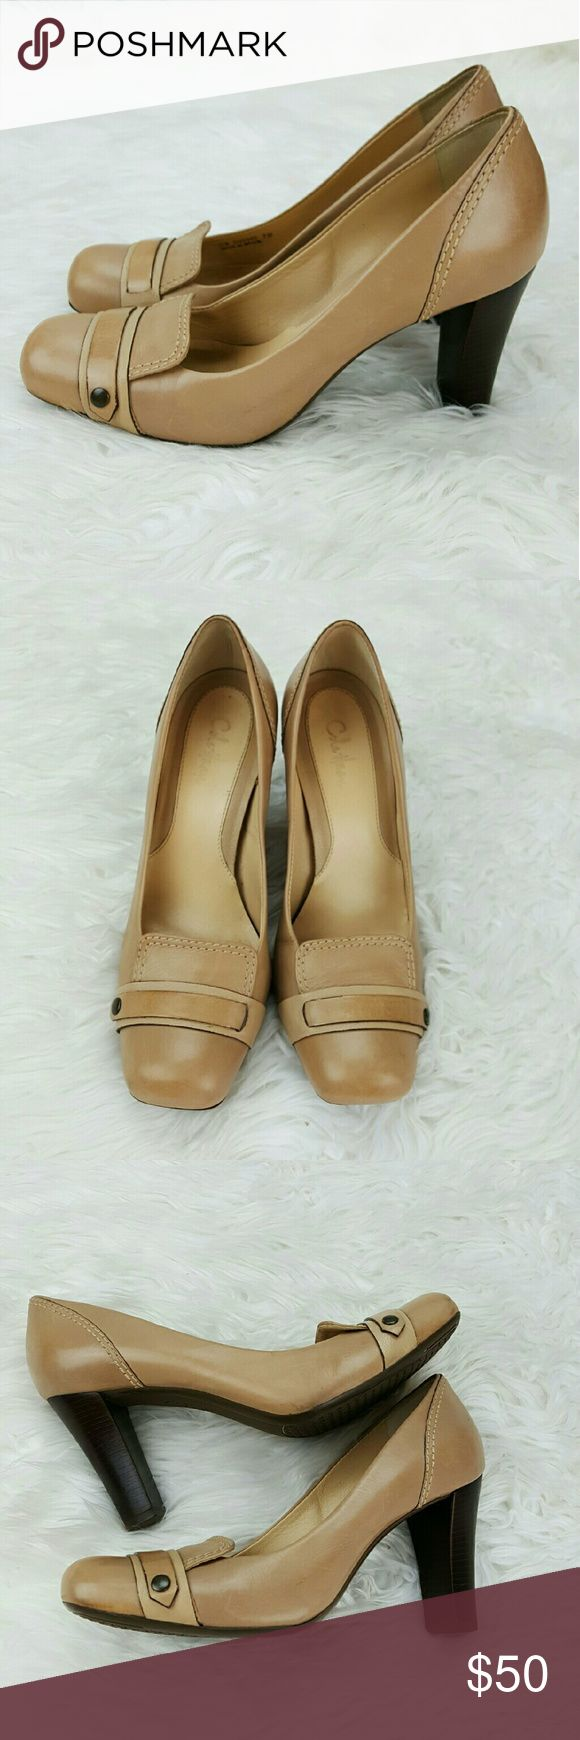 """SALE Taupe Cole Haan Heels Fabulous Taupe Cole Haan Heels with a 3"""" Chunky Heel Very Comfortable and Super Stylish in Great Condition Perfect for Fall/ Winter Cole Haan Shoes Heels"""